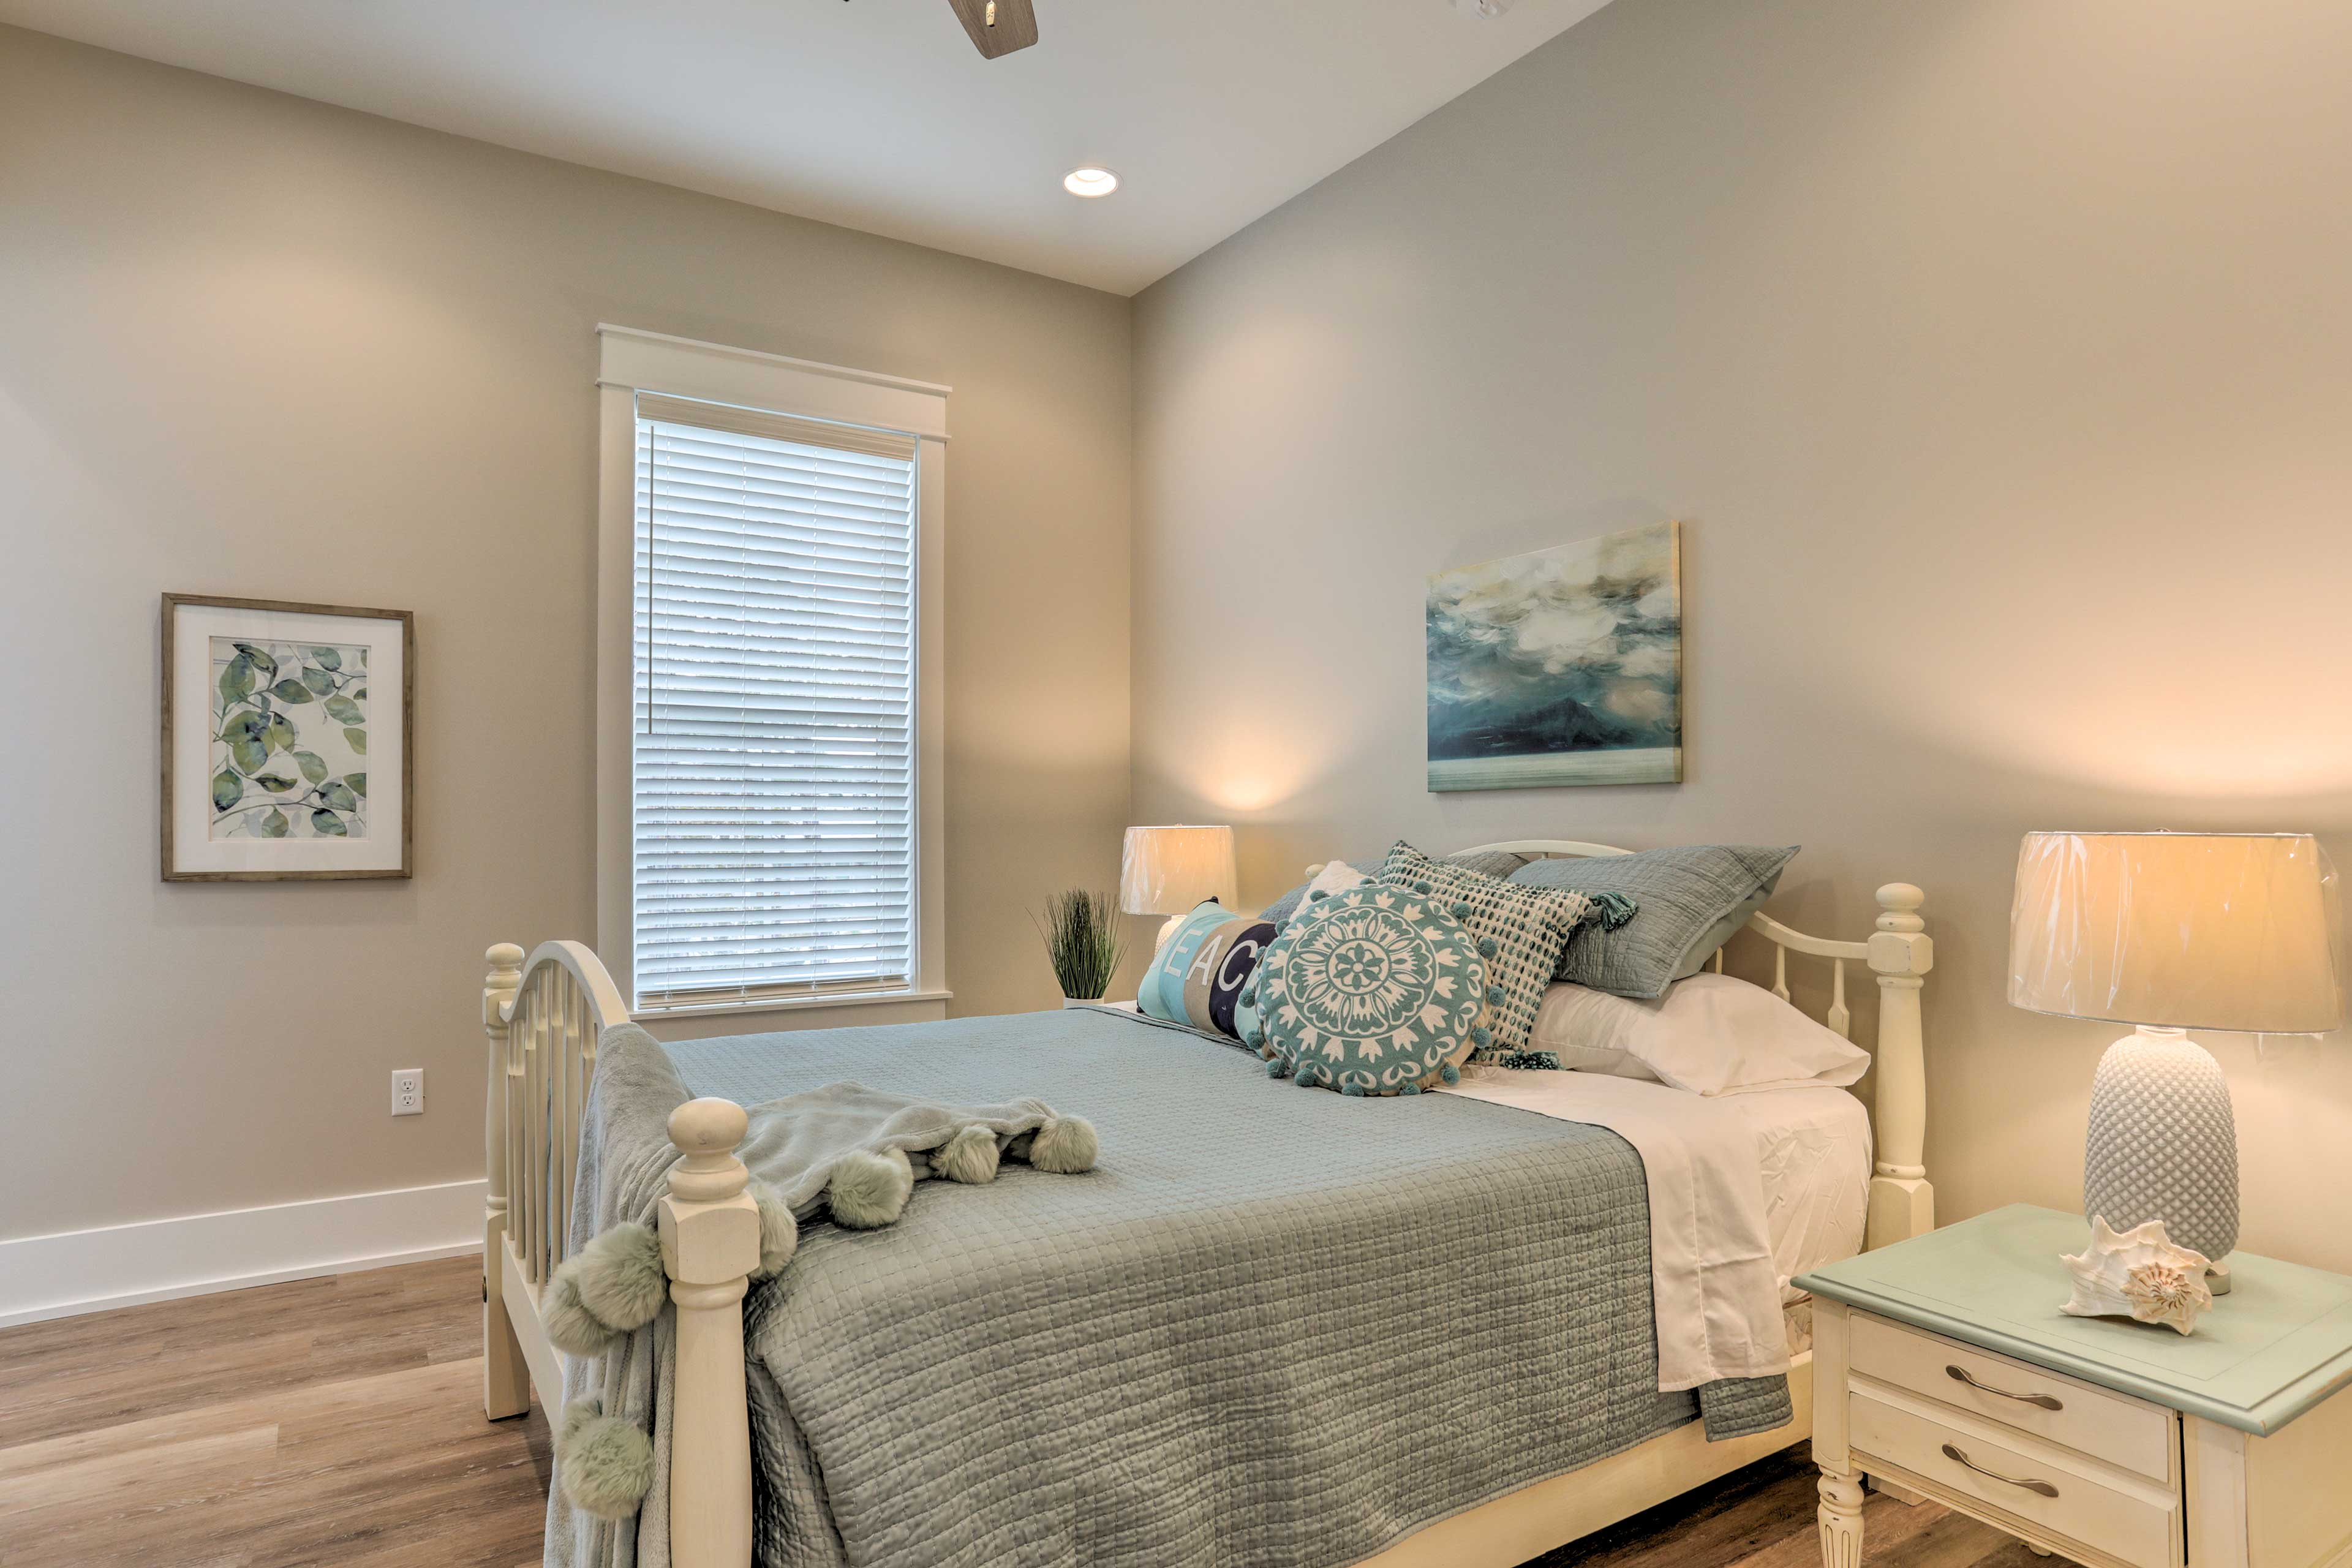 The fourth bedroom includes a queen bed.